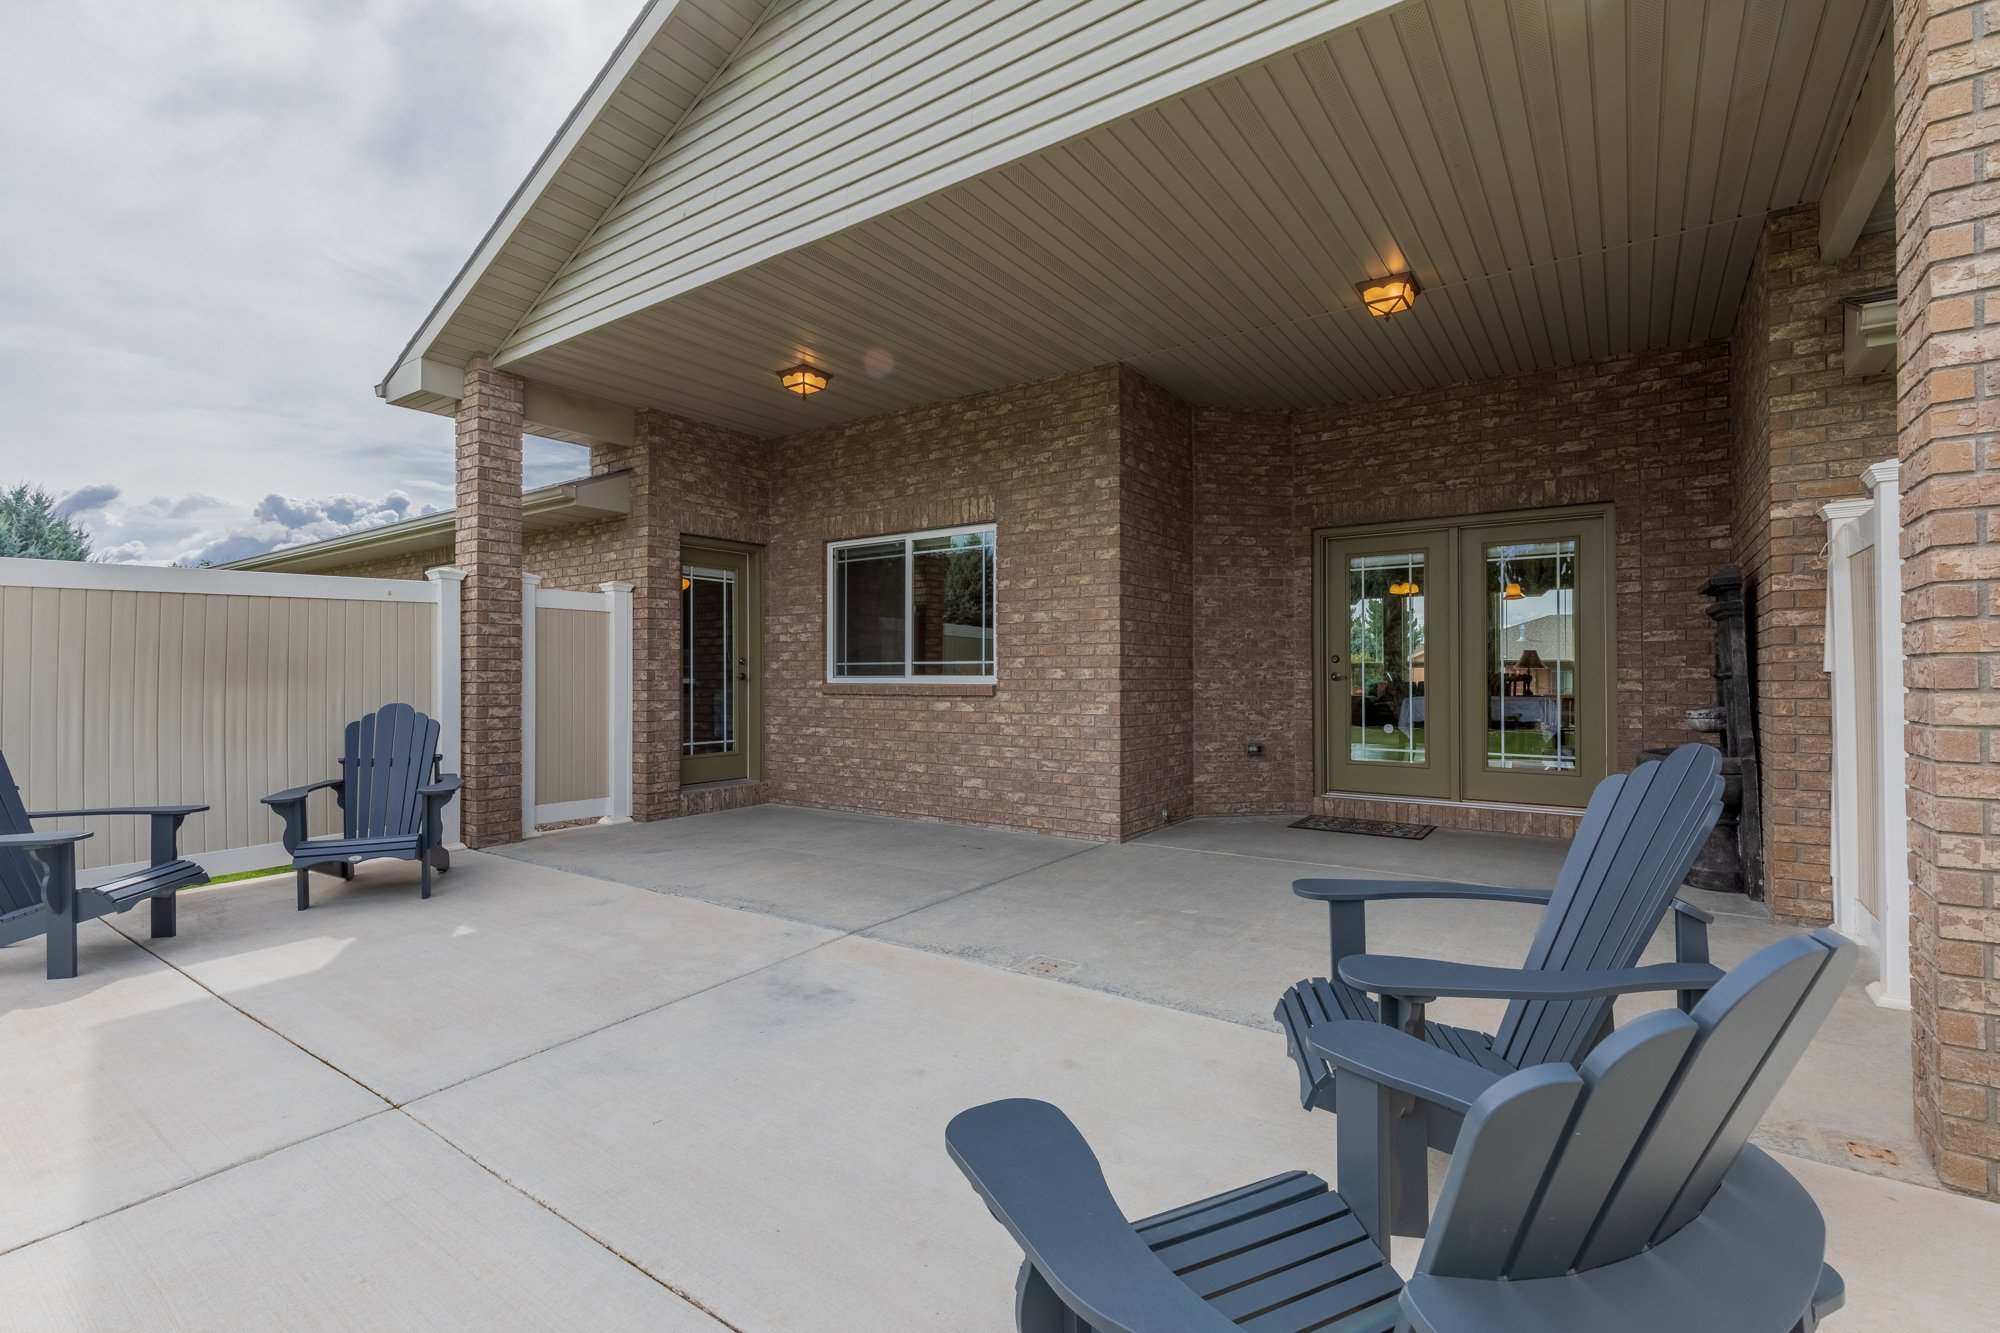 Covered Patio with Privacy Screening - 2941 Ivy Dr Montrose, CO 81401 - Atha Team Real Estate